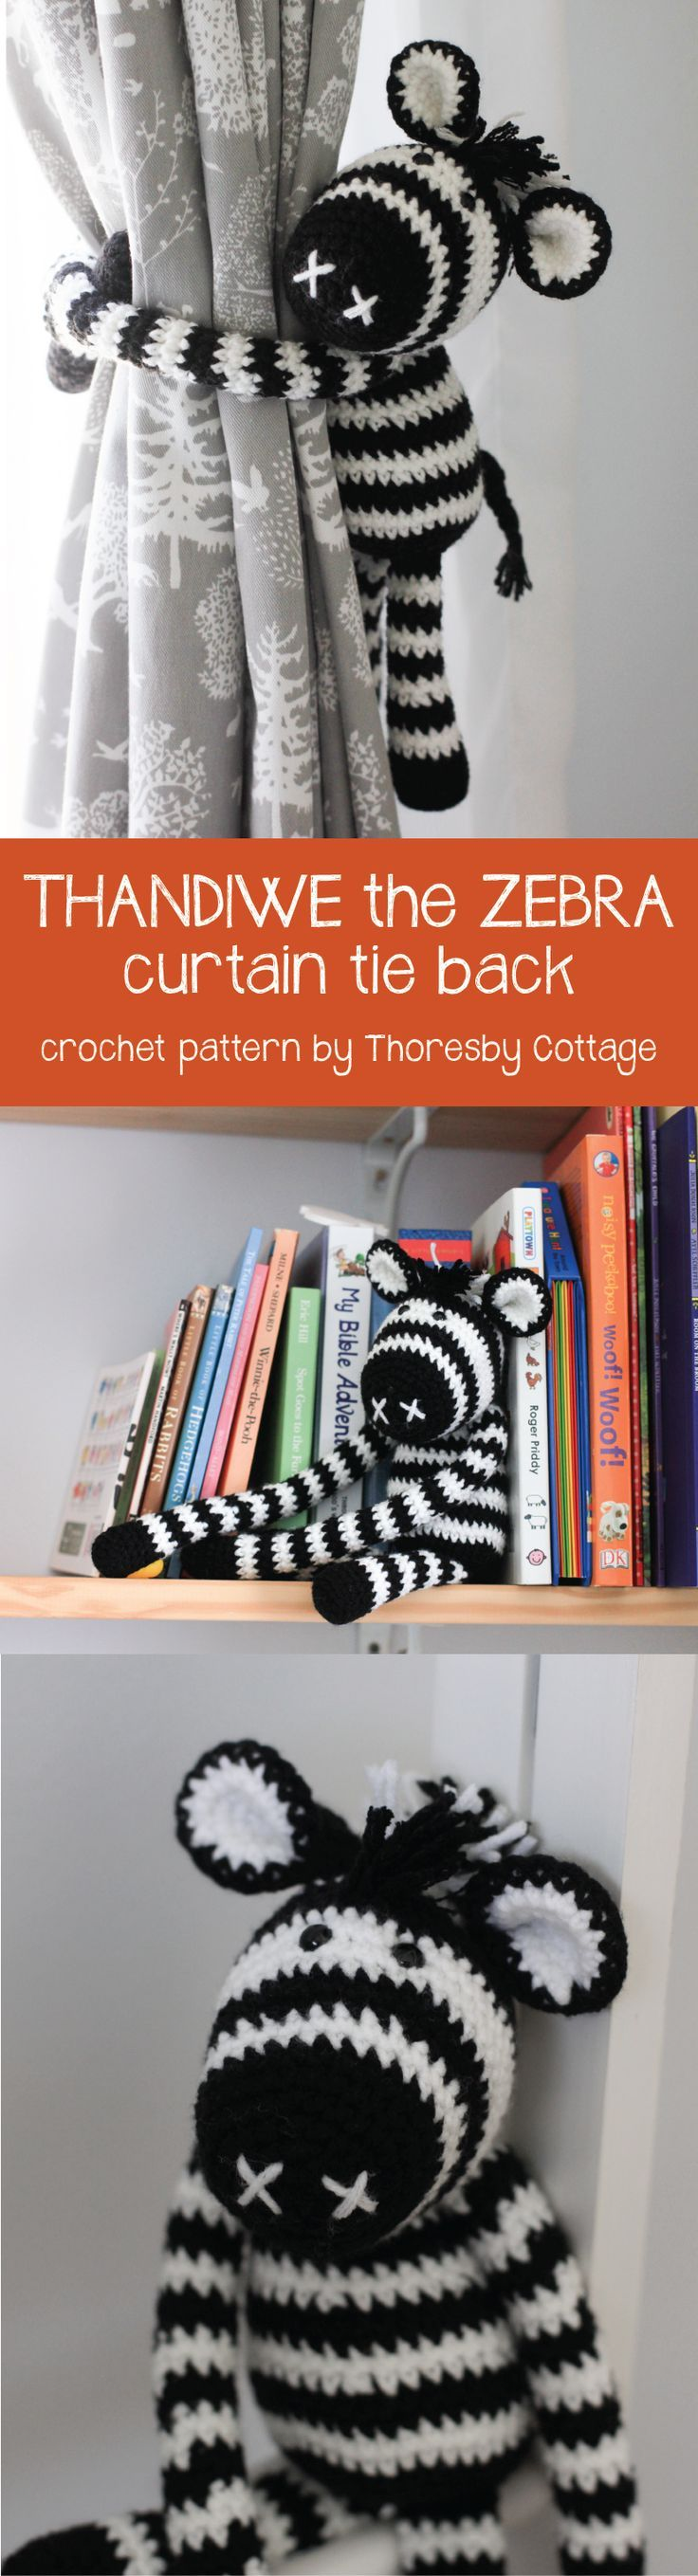 Crochet zebra curtain tie back. Ideal for a nursery or child's room.